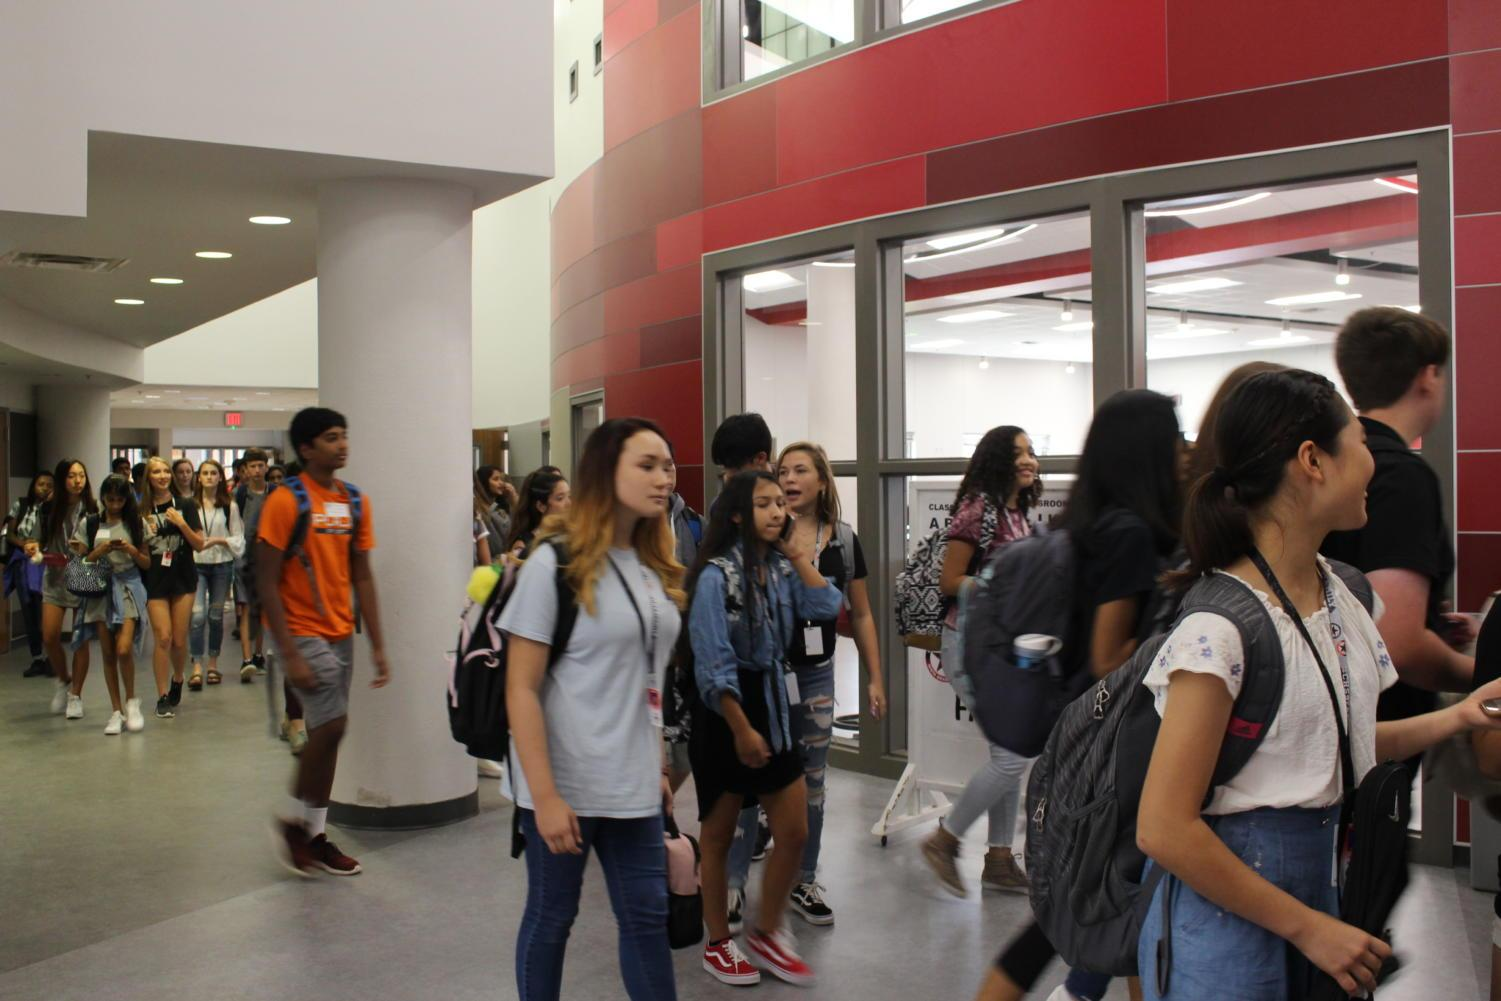 CHS9 freshmen make their way through the hallways after being released from fourth period on the first day of school at the newly renovated campus. By housing nearly 900 students and 80 faculty members, CHS9 hopes to avoid the issue of overcrowding seen at CHS and become a more tight-knit community within the school.